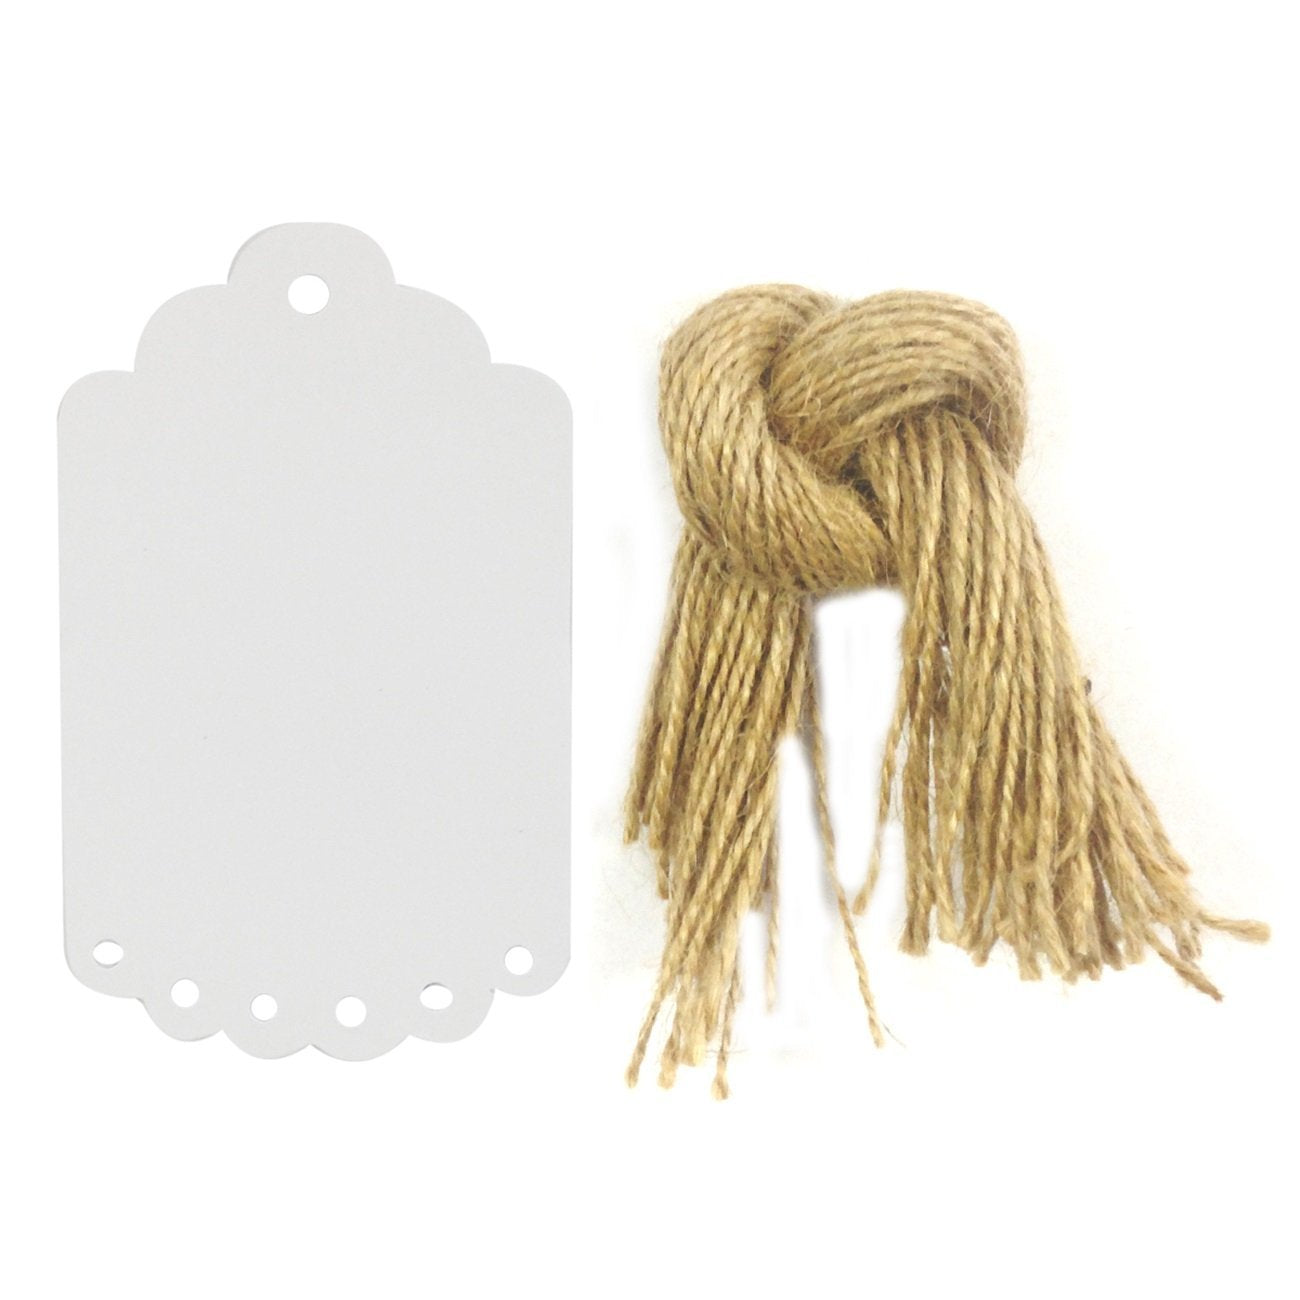 Wrapables 50 Gift Tags with Free Cut Strings + Cotton Baker's Twine 12ply 110 Yard